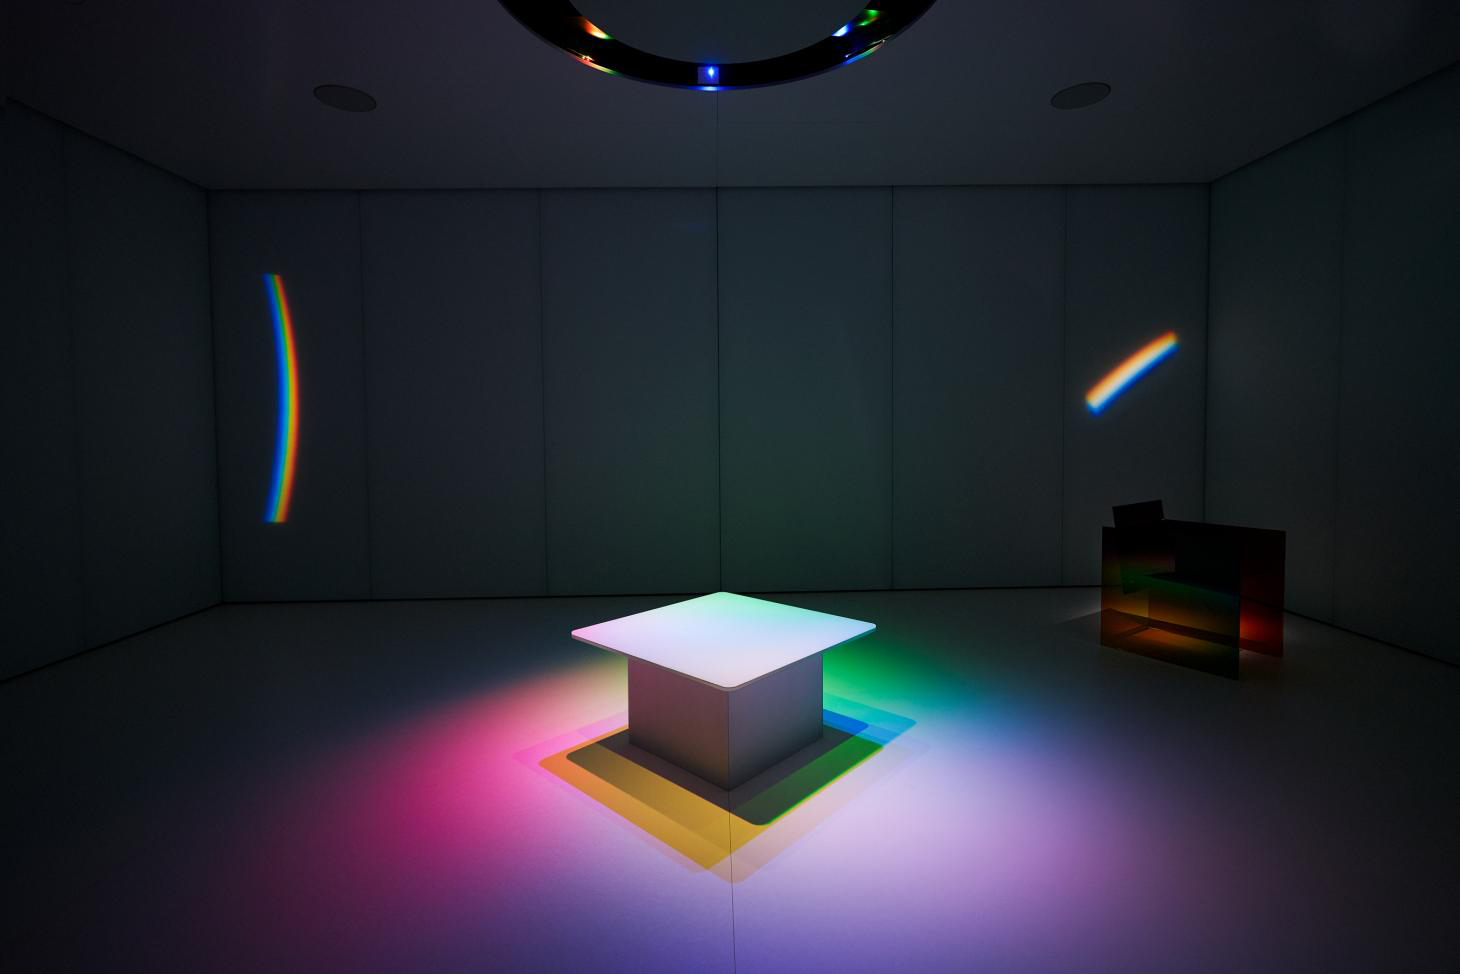 Inside Germans Ermičs' 'Where the Rainbow Ends' pavilion for in Cannes, which features rainbow lighting.